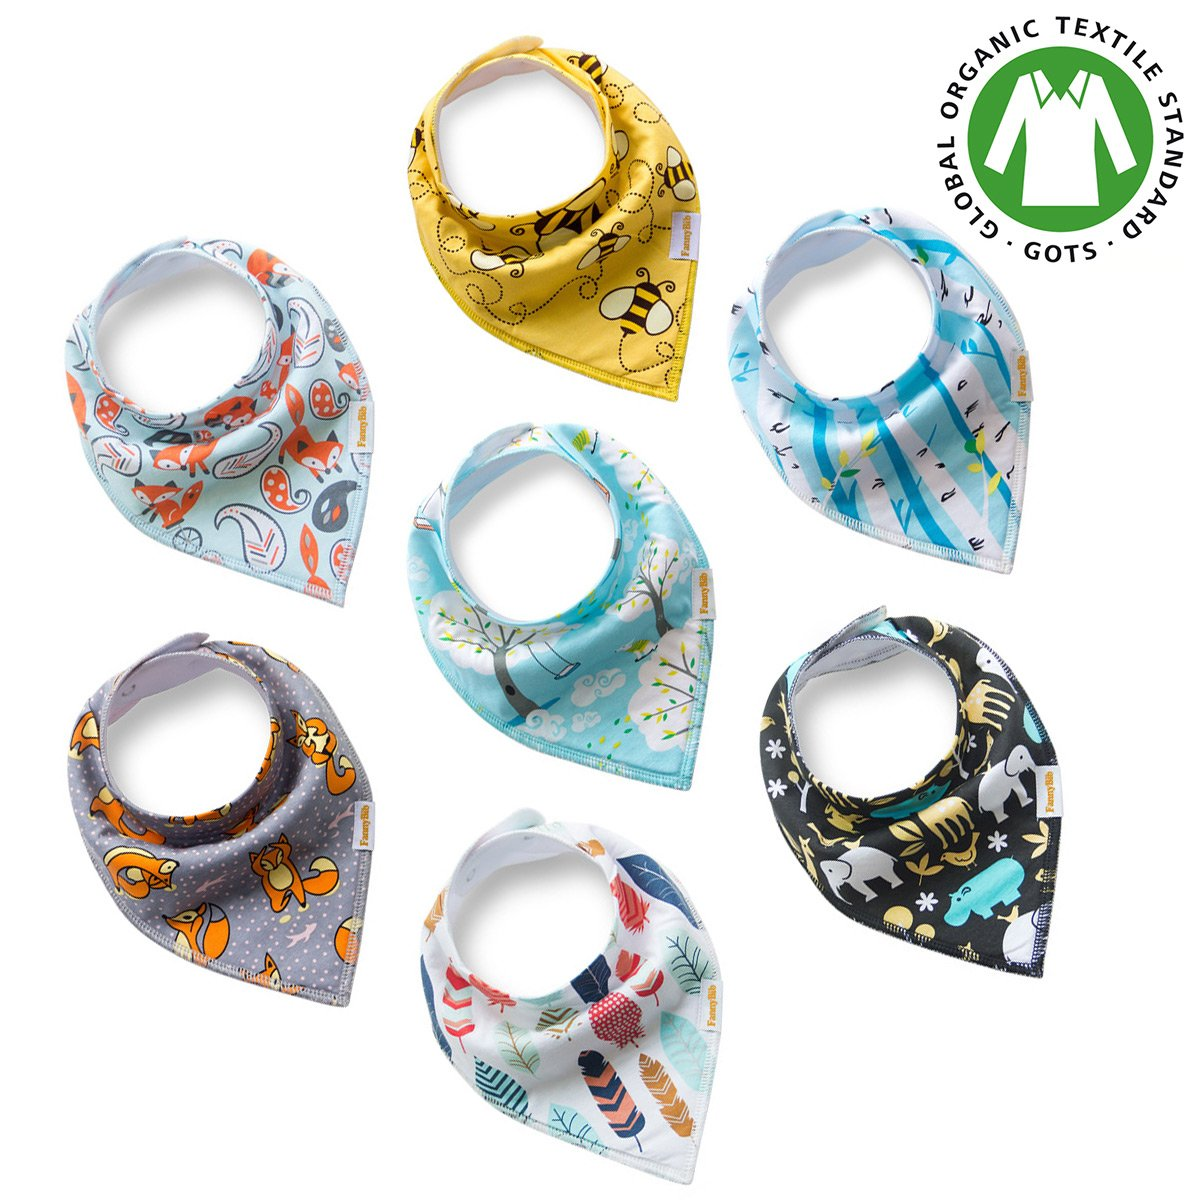 Premium Baby Bandana Drool Bibs unisex 7-Pack Burp Cloth Gift Set for Drooling Teething Feeding 100% Organic Cotton Absorbent Hypoallergenic for Boys and Girls FannyBib